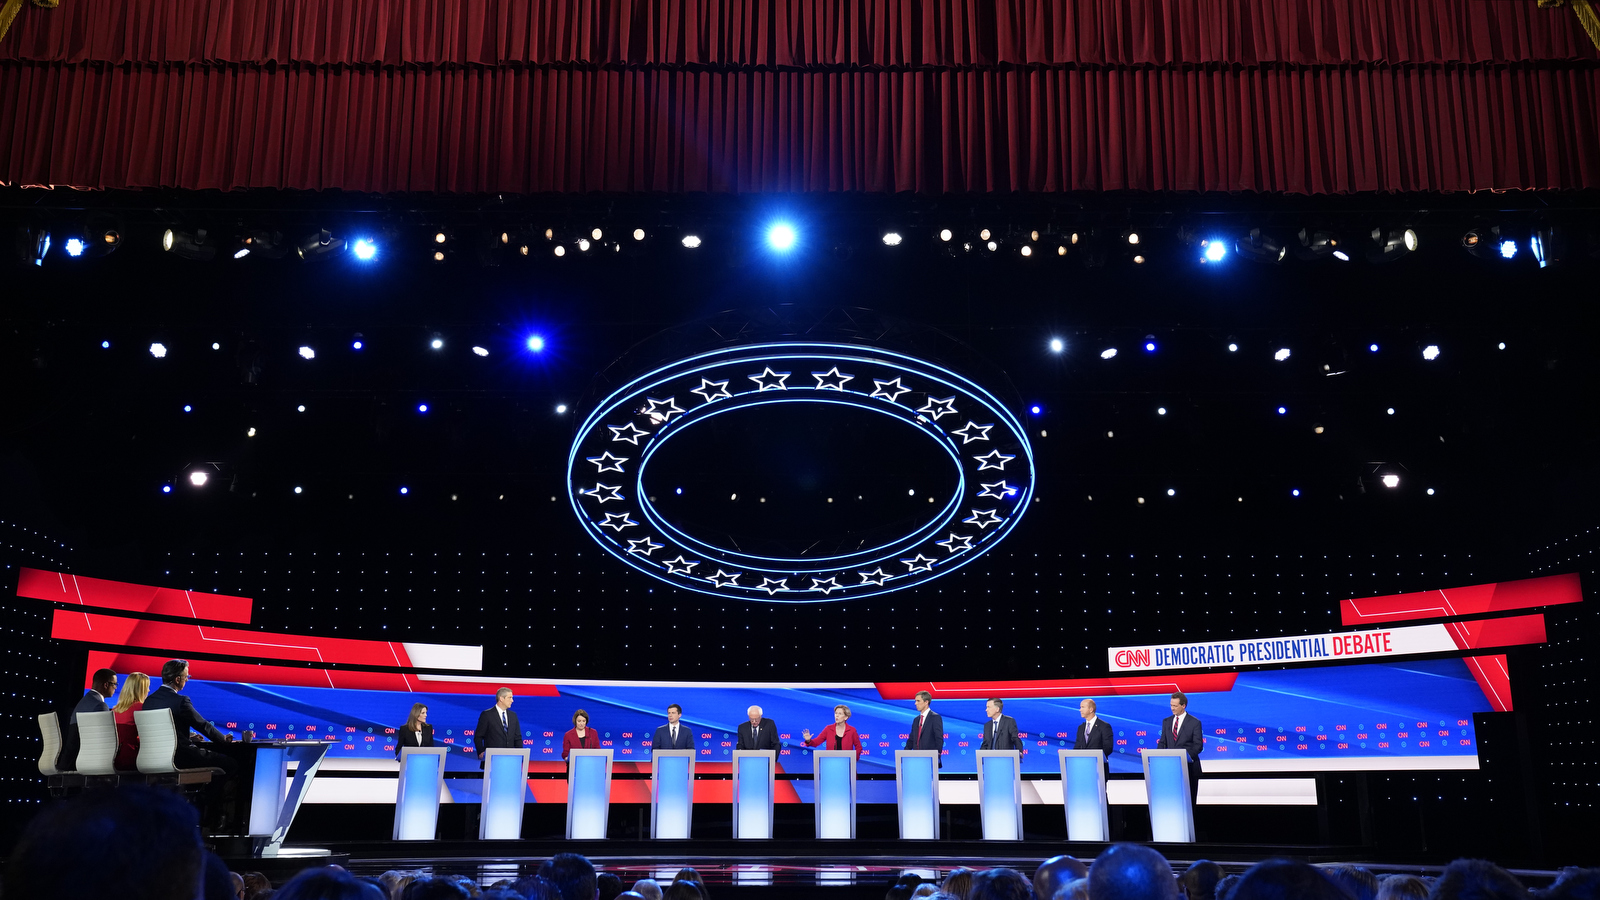 NCS_CNN-Democratic-Debate_Stage-Design-2019_0003